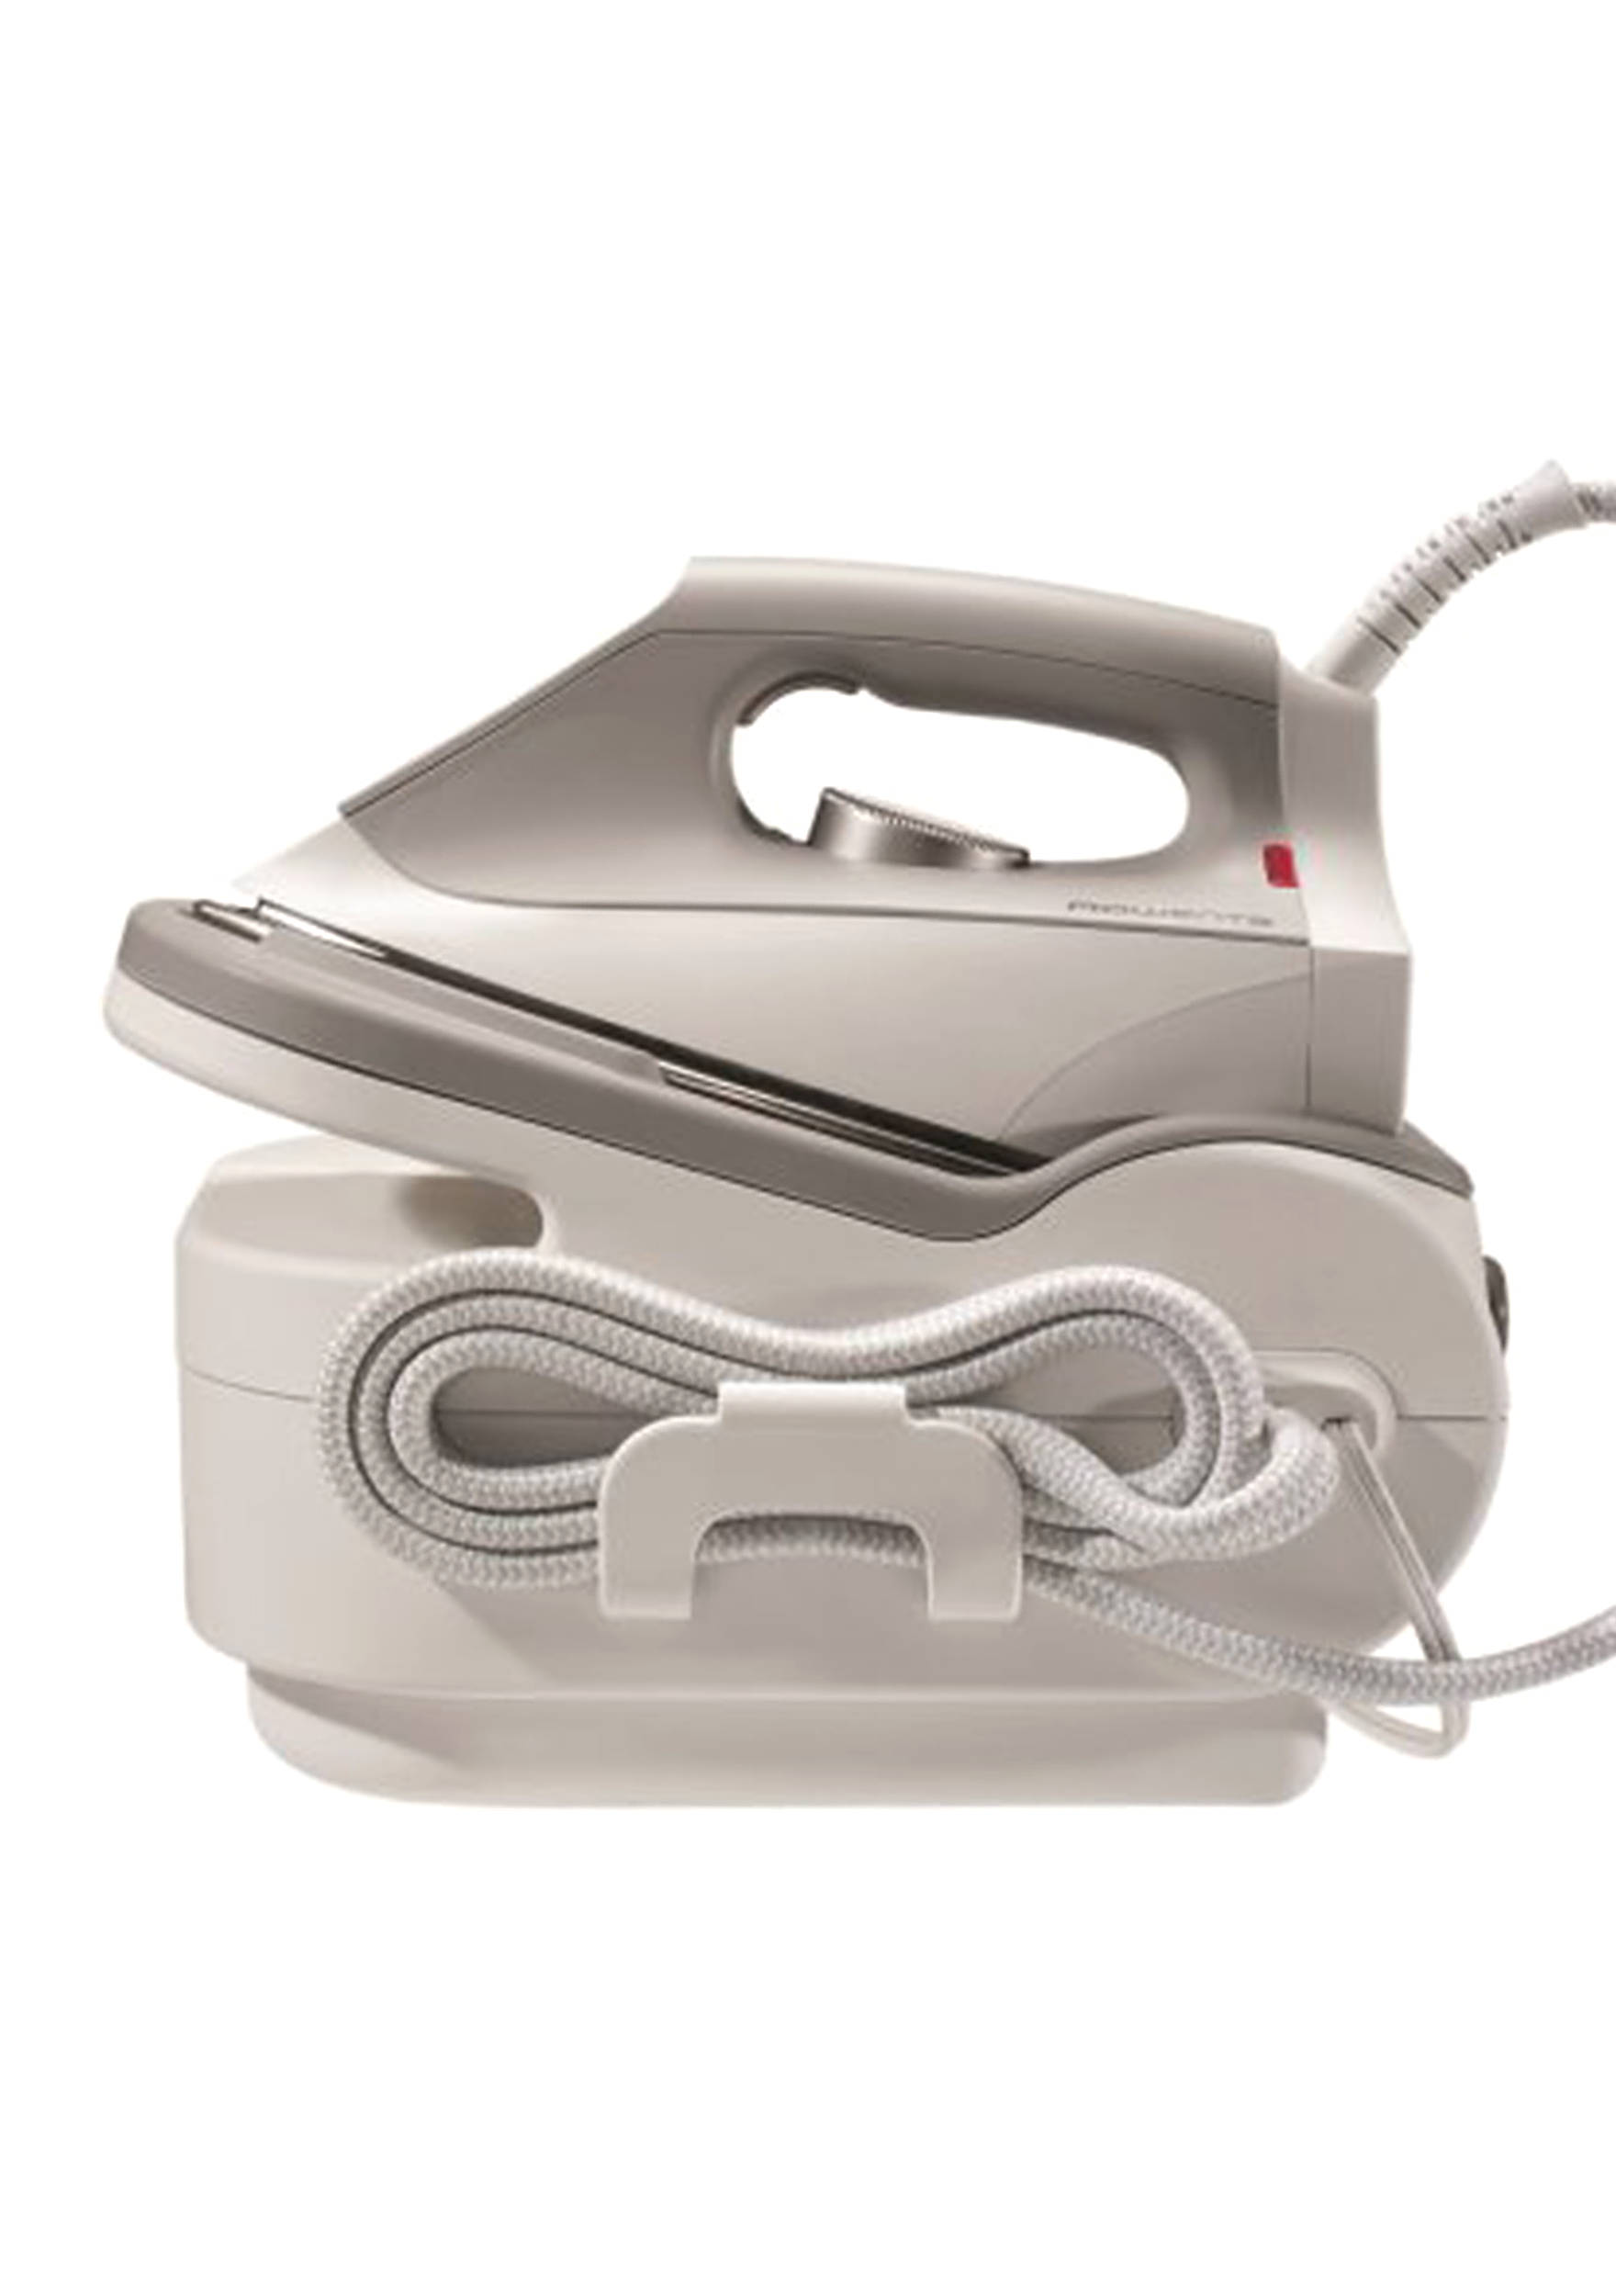 Cleaning rowenta pressure iron and steamer - Back To Organization Cleaning Rowenta Pressure Iron And Steamer